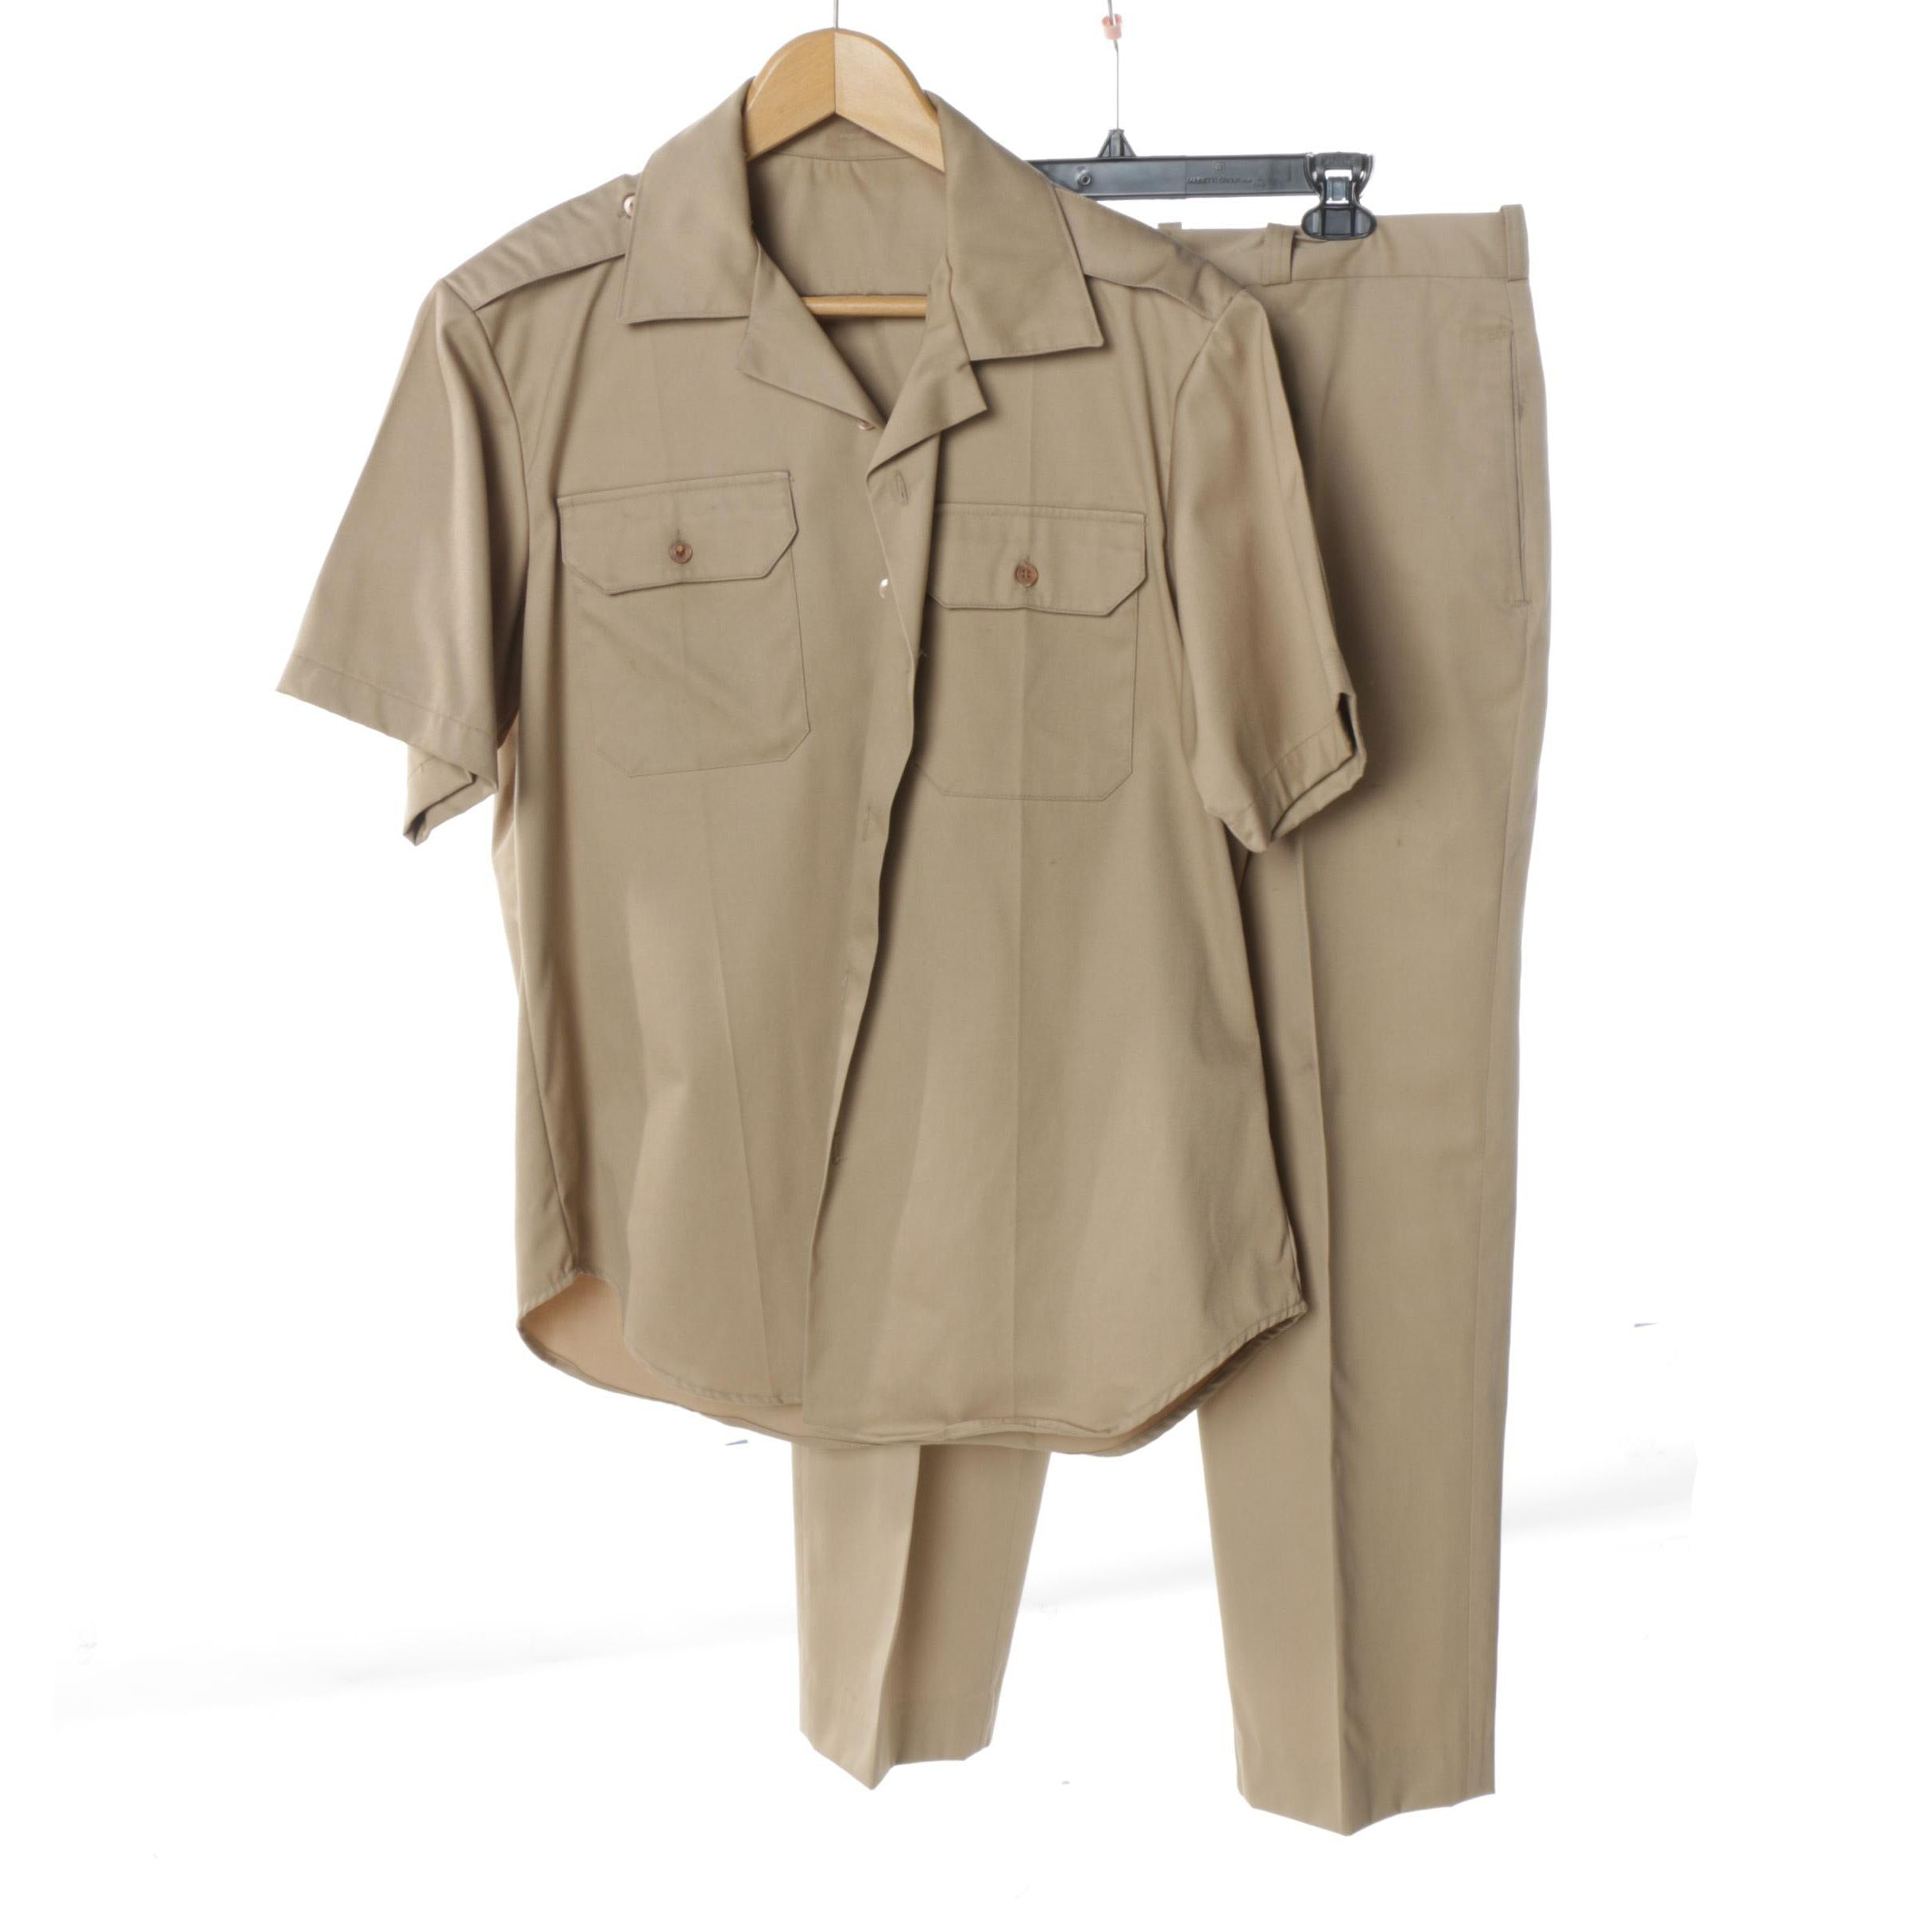 US Army Khaki Uniform Set